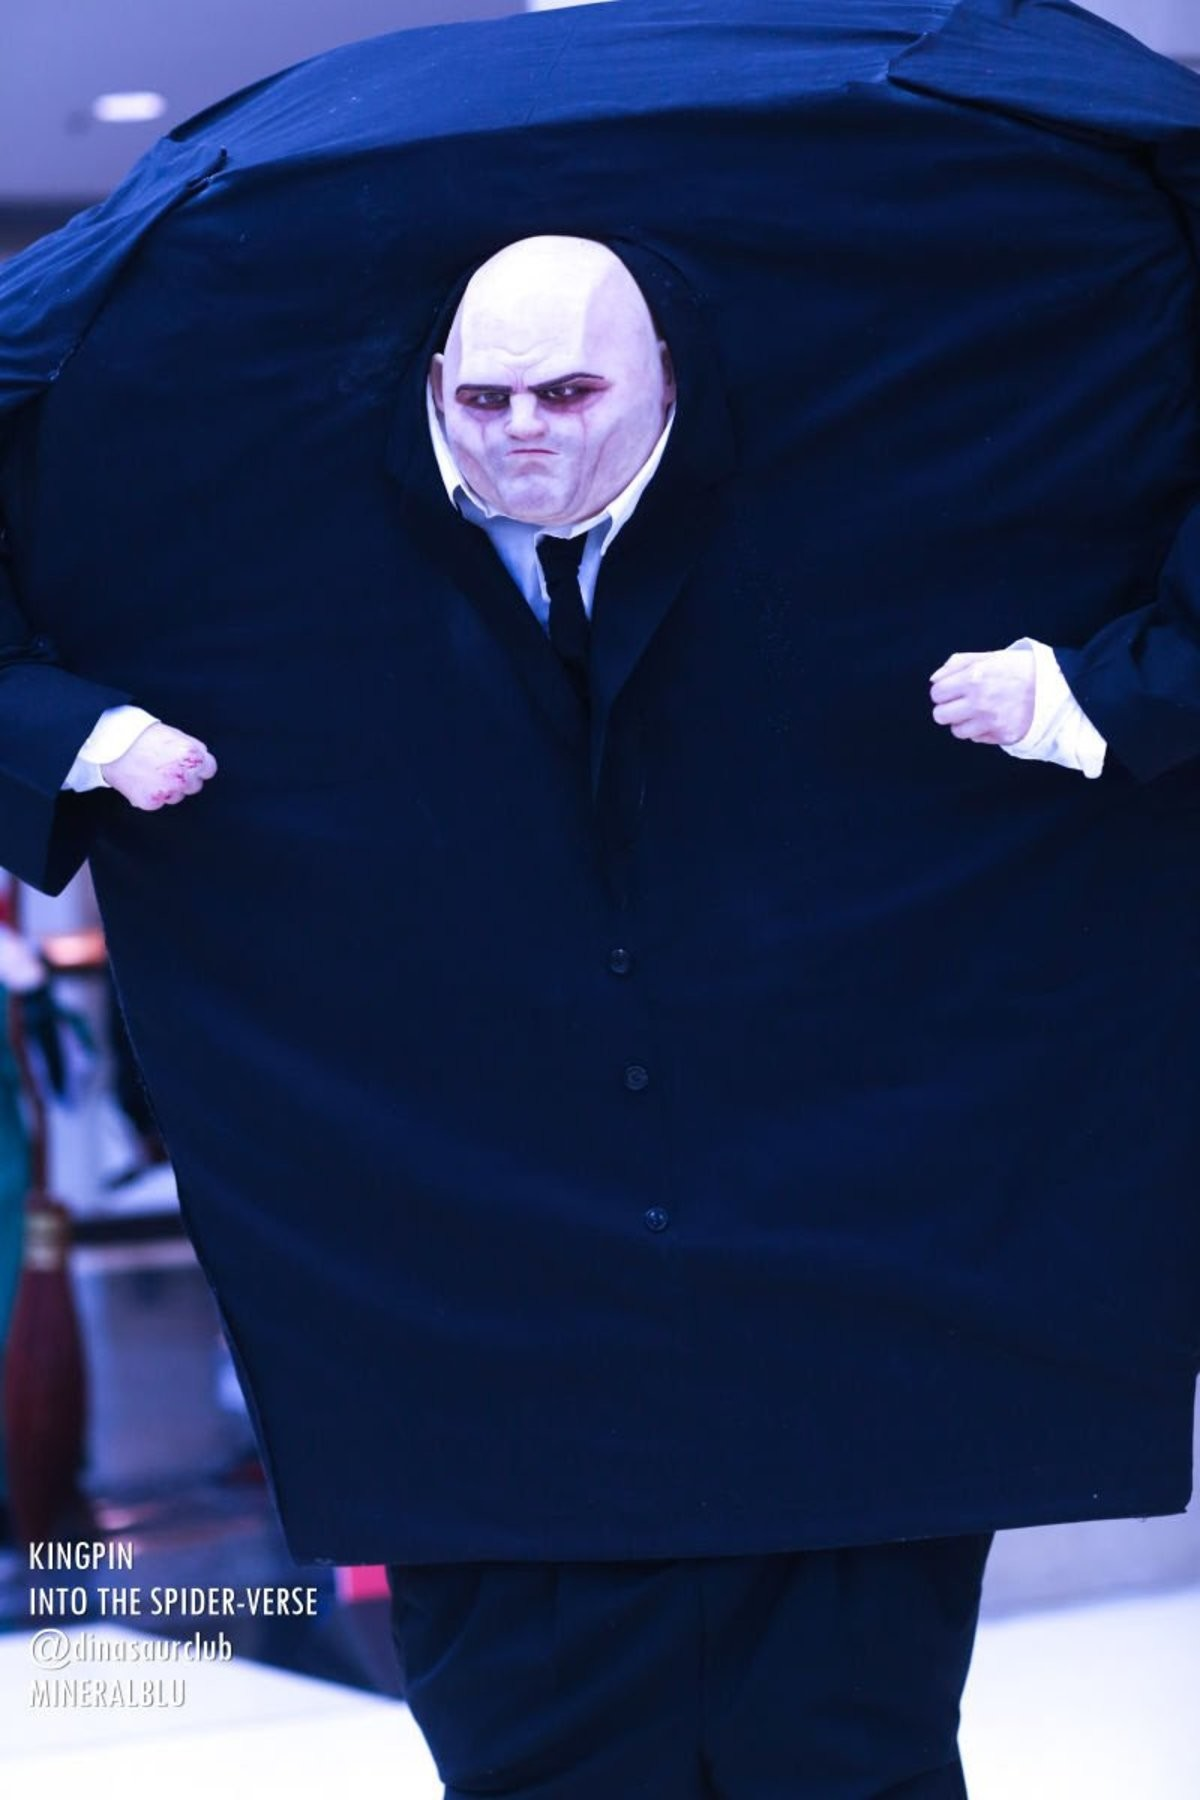 Kingpin Into The Spider-Verse Cosplay. .. There is only one true kingpin cosplayer